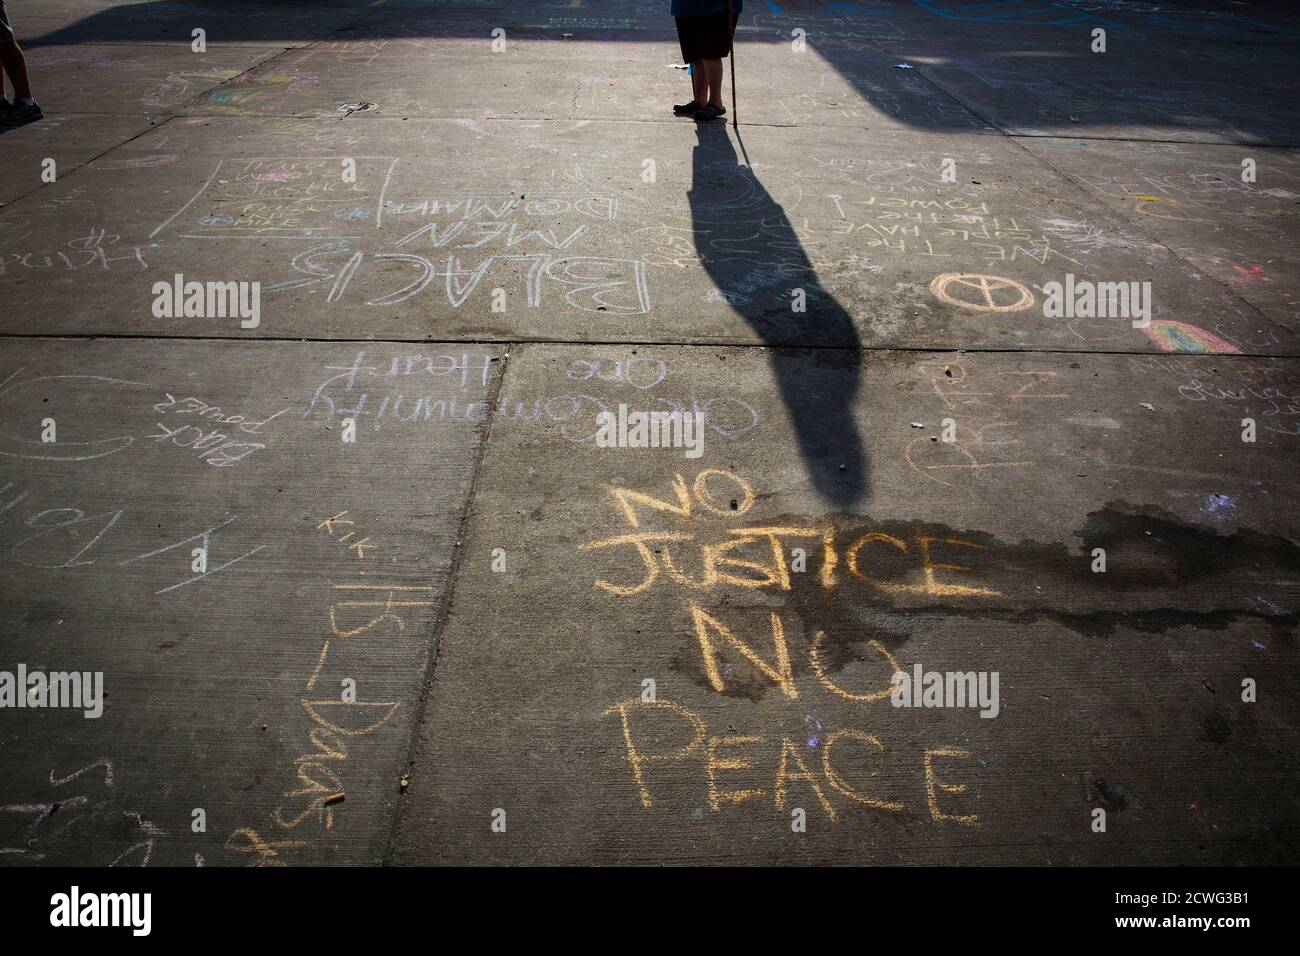 A man with a walking stick passes protest messages written in a parking lot before the announcement of the name of the officer involved in the shooting of Michael Brown in Ferguson, Missouri August 15, 2014. Police Chief Thomas Jackson on Friday identified Darren Wilson as the police officer who fatally shoot an unarmed black teenager, which led to days of sometimes-violent demonstrations. Jackson announced the name at a press conference held near a QuikTrip convenience store that had been burned amid protests over the shooting of Brown, 18, last Saturday.  REUTERS/Lucas Jackson (UNITED STATES Foto Stock